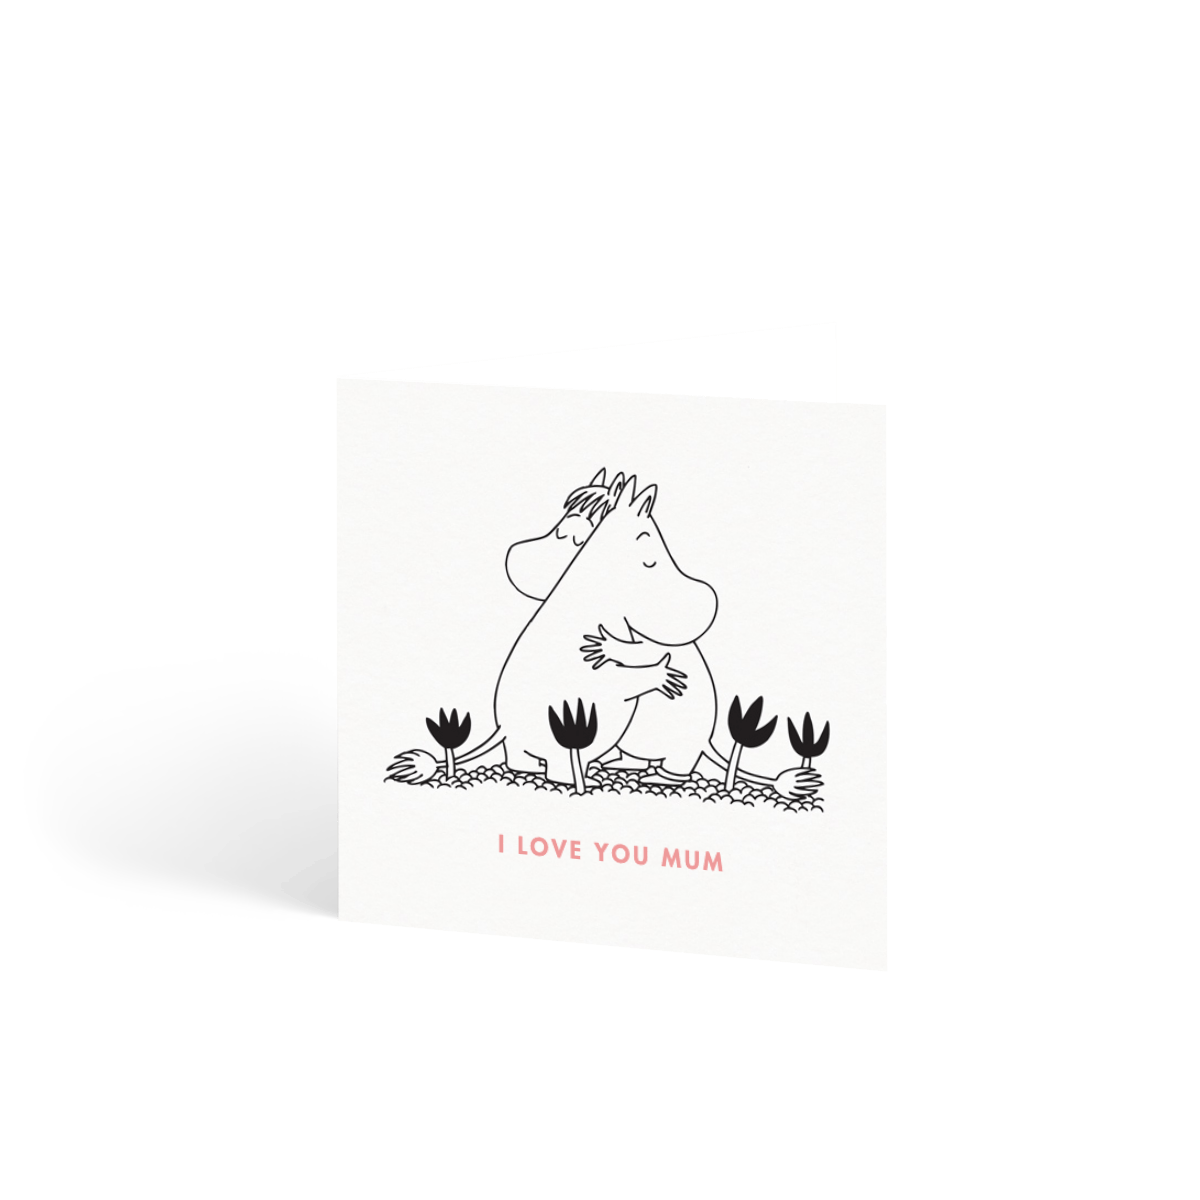 Https%3a%2f%2fwww.papier.com%2fproduct image%2f34337%2f16%2fmoomin love 8589 front 1519317941.png?ixlib=rb 1.1